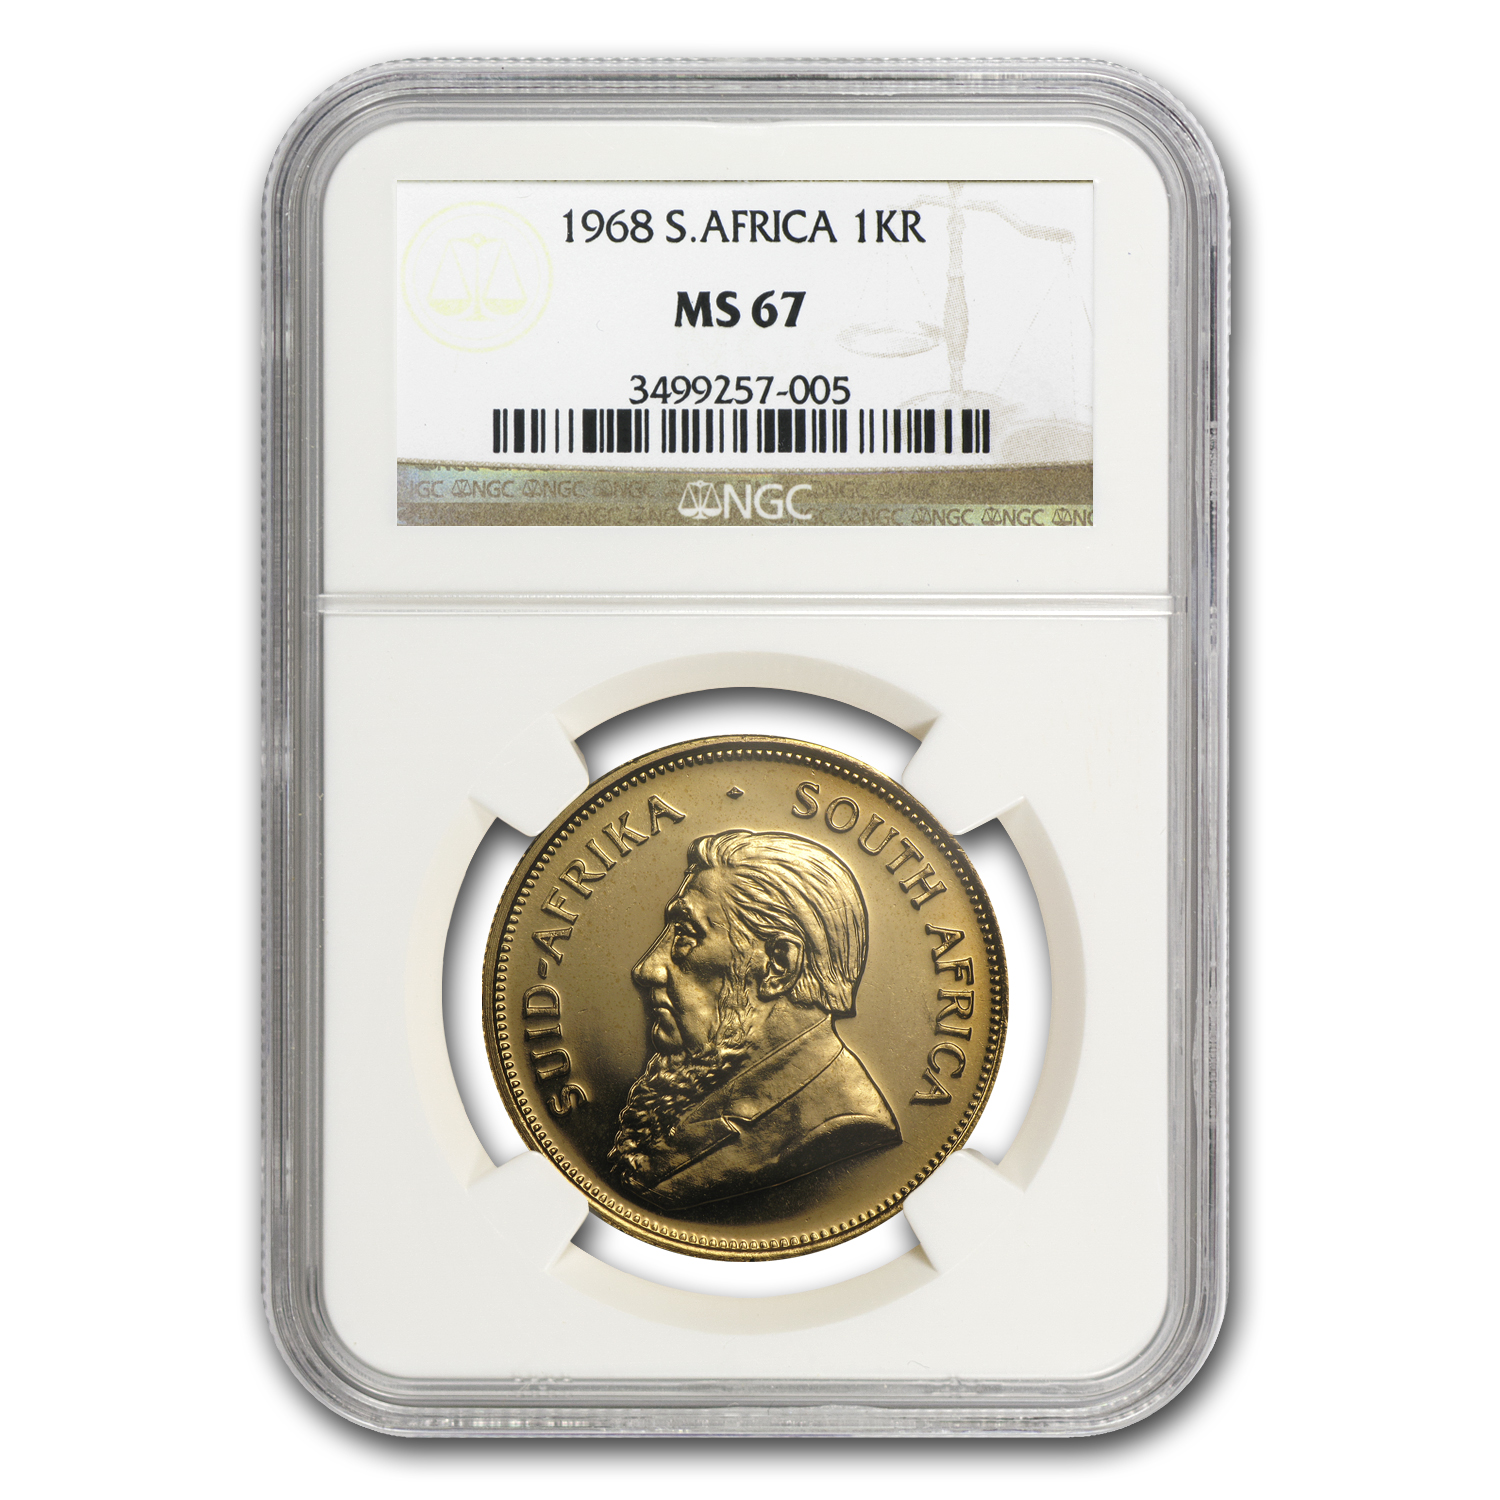 1968 1 oz Gold South African Krugerrand MS-67 NGC (Registry Coin)